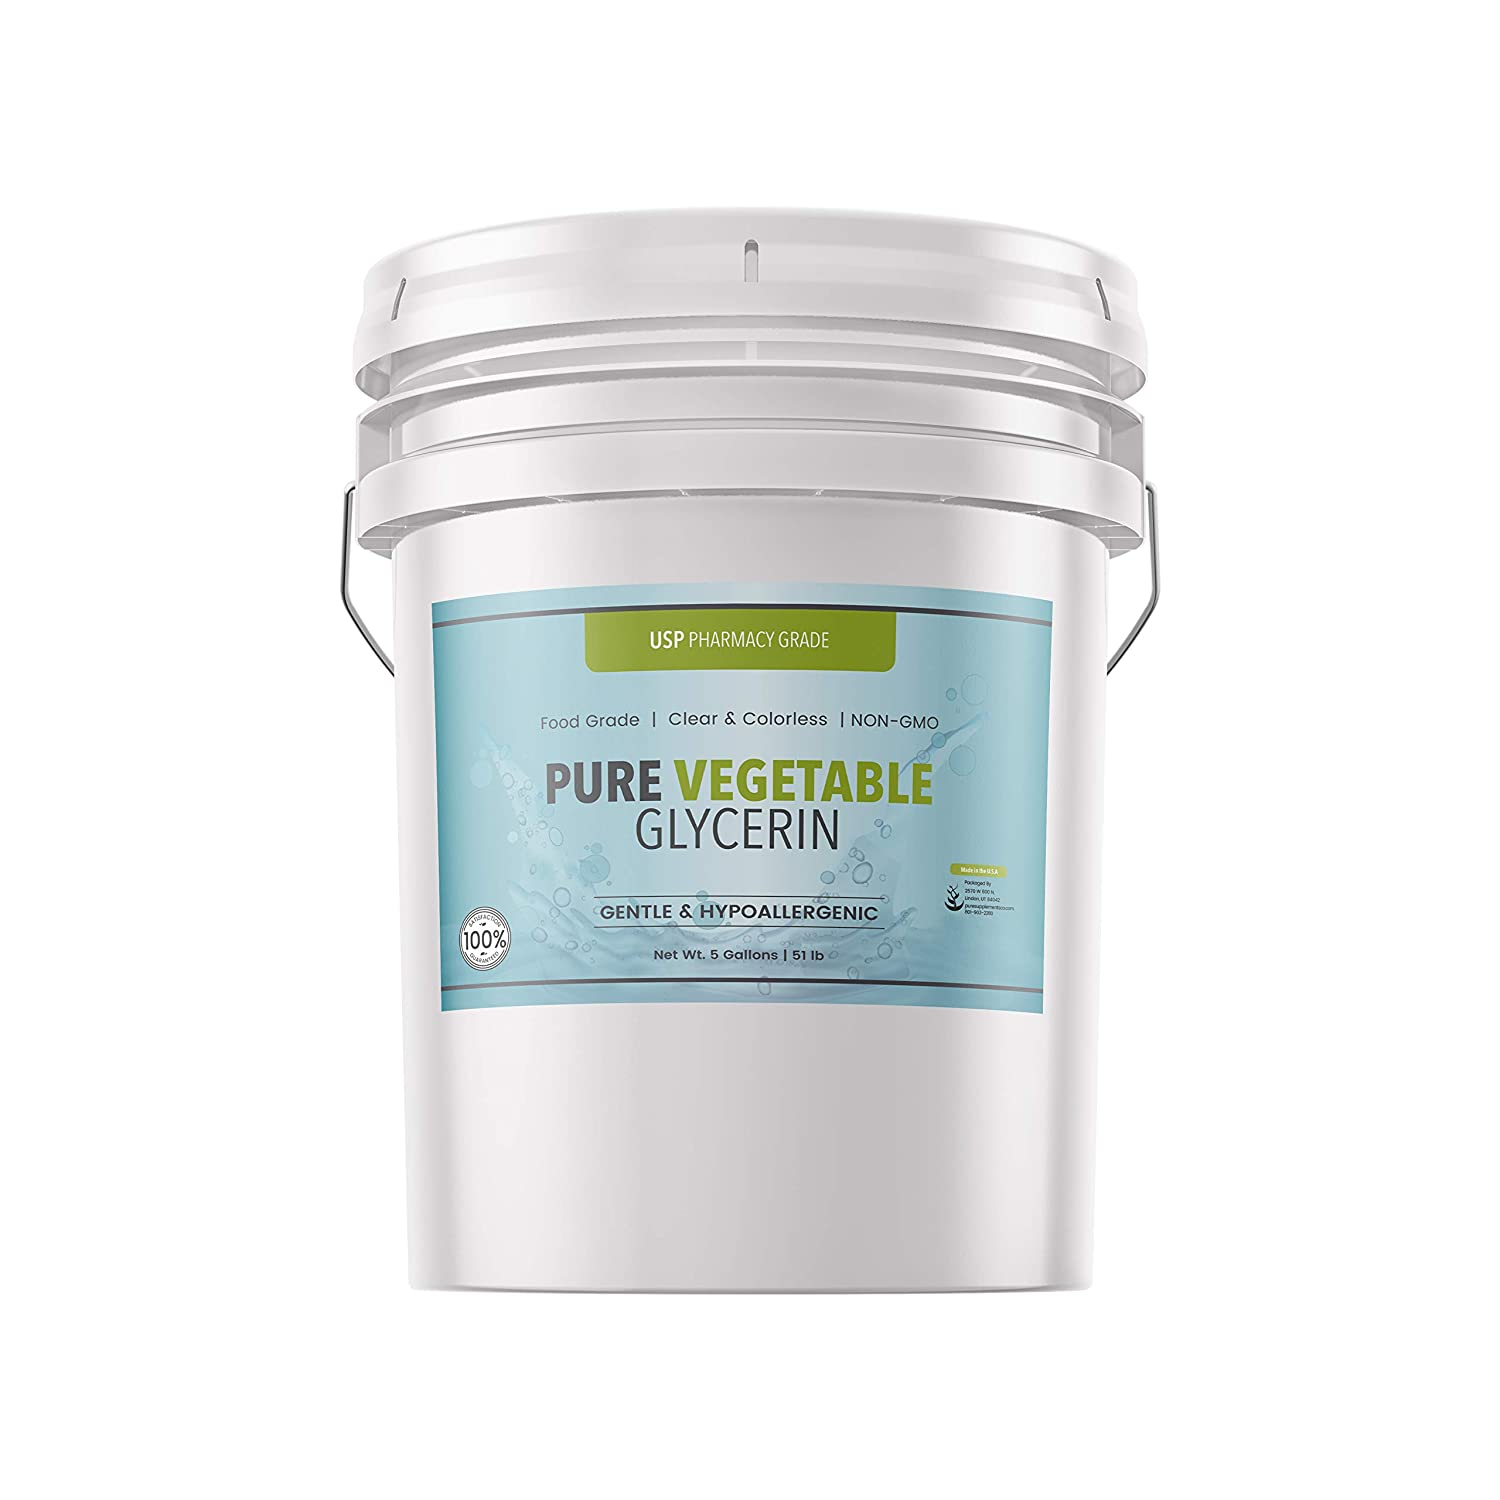 Vegetable Glycerin (5 Gallon) by Pure, Sustainably Sourced, Pure, Non-GMO, Vegan, Made in USA, Clear & Odorless, Food & USP Pharmaceutical Grade, Moisturizer & Skin Cleanser